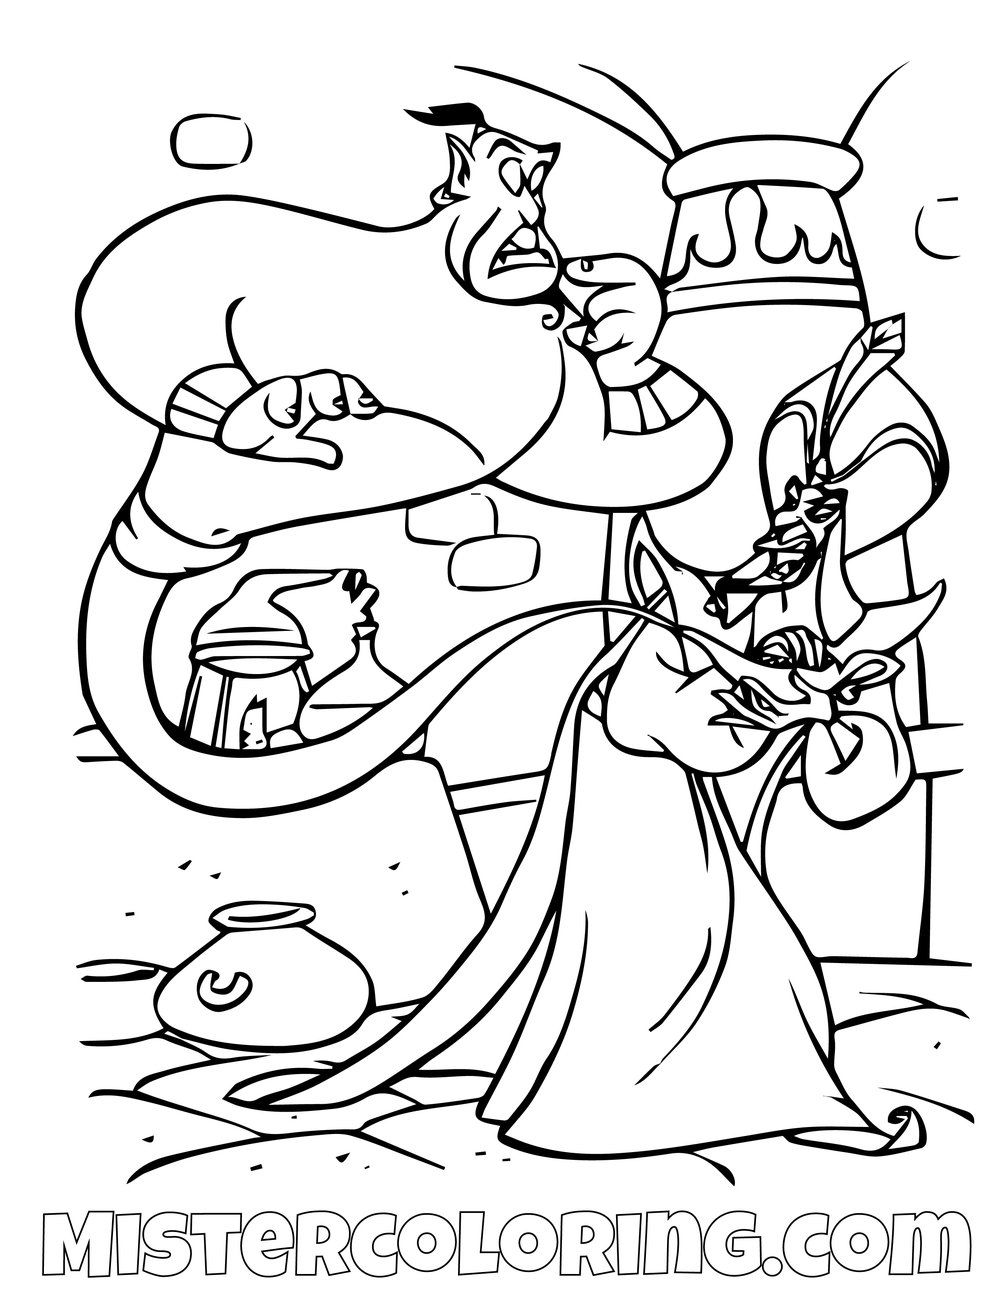 Genie Captured By Jafar Aladdin Coloring Page For Kids Disney